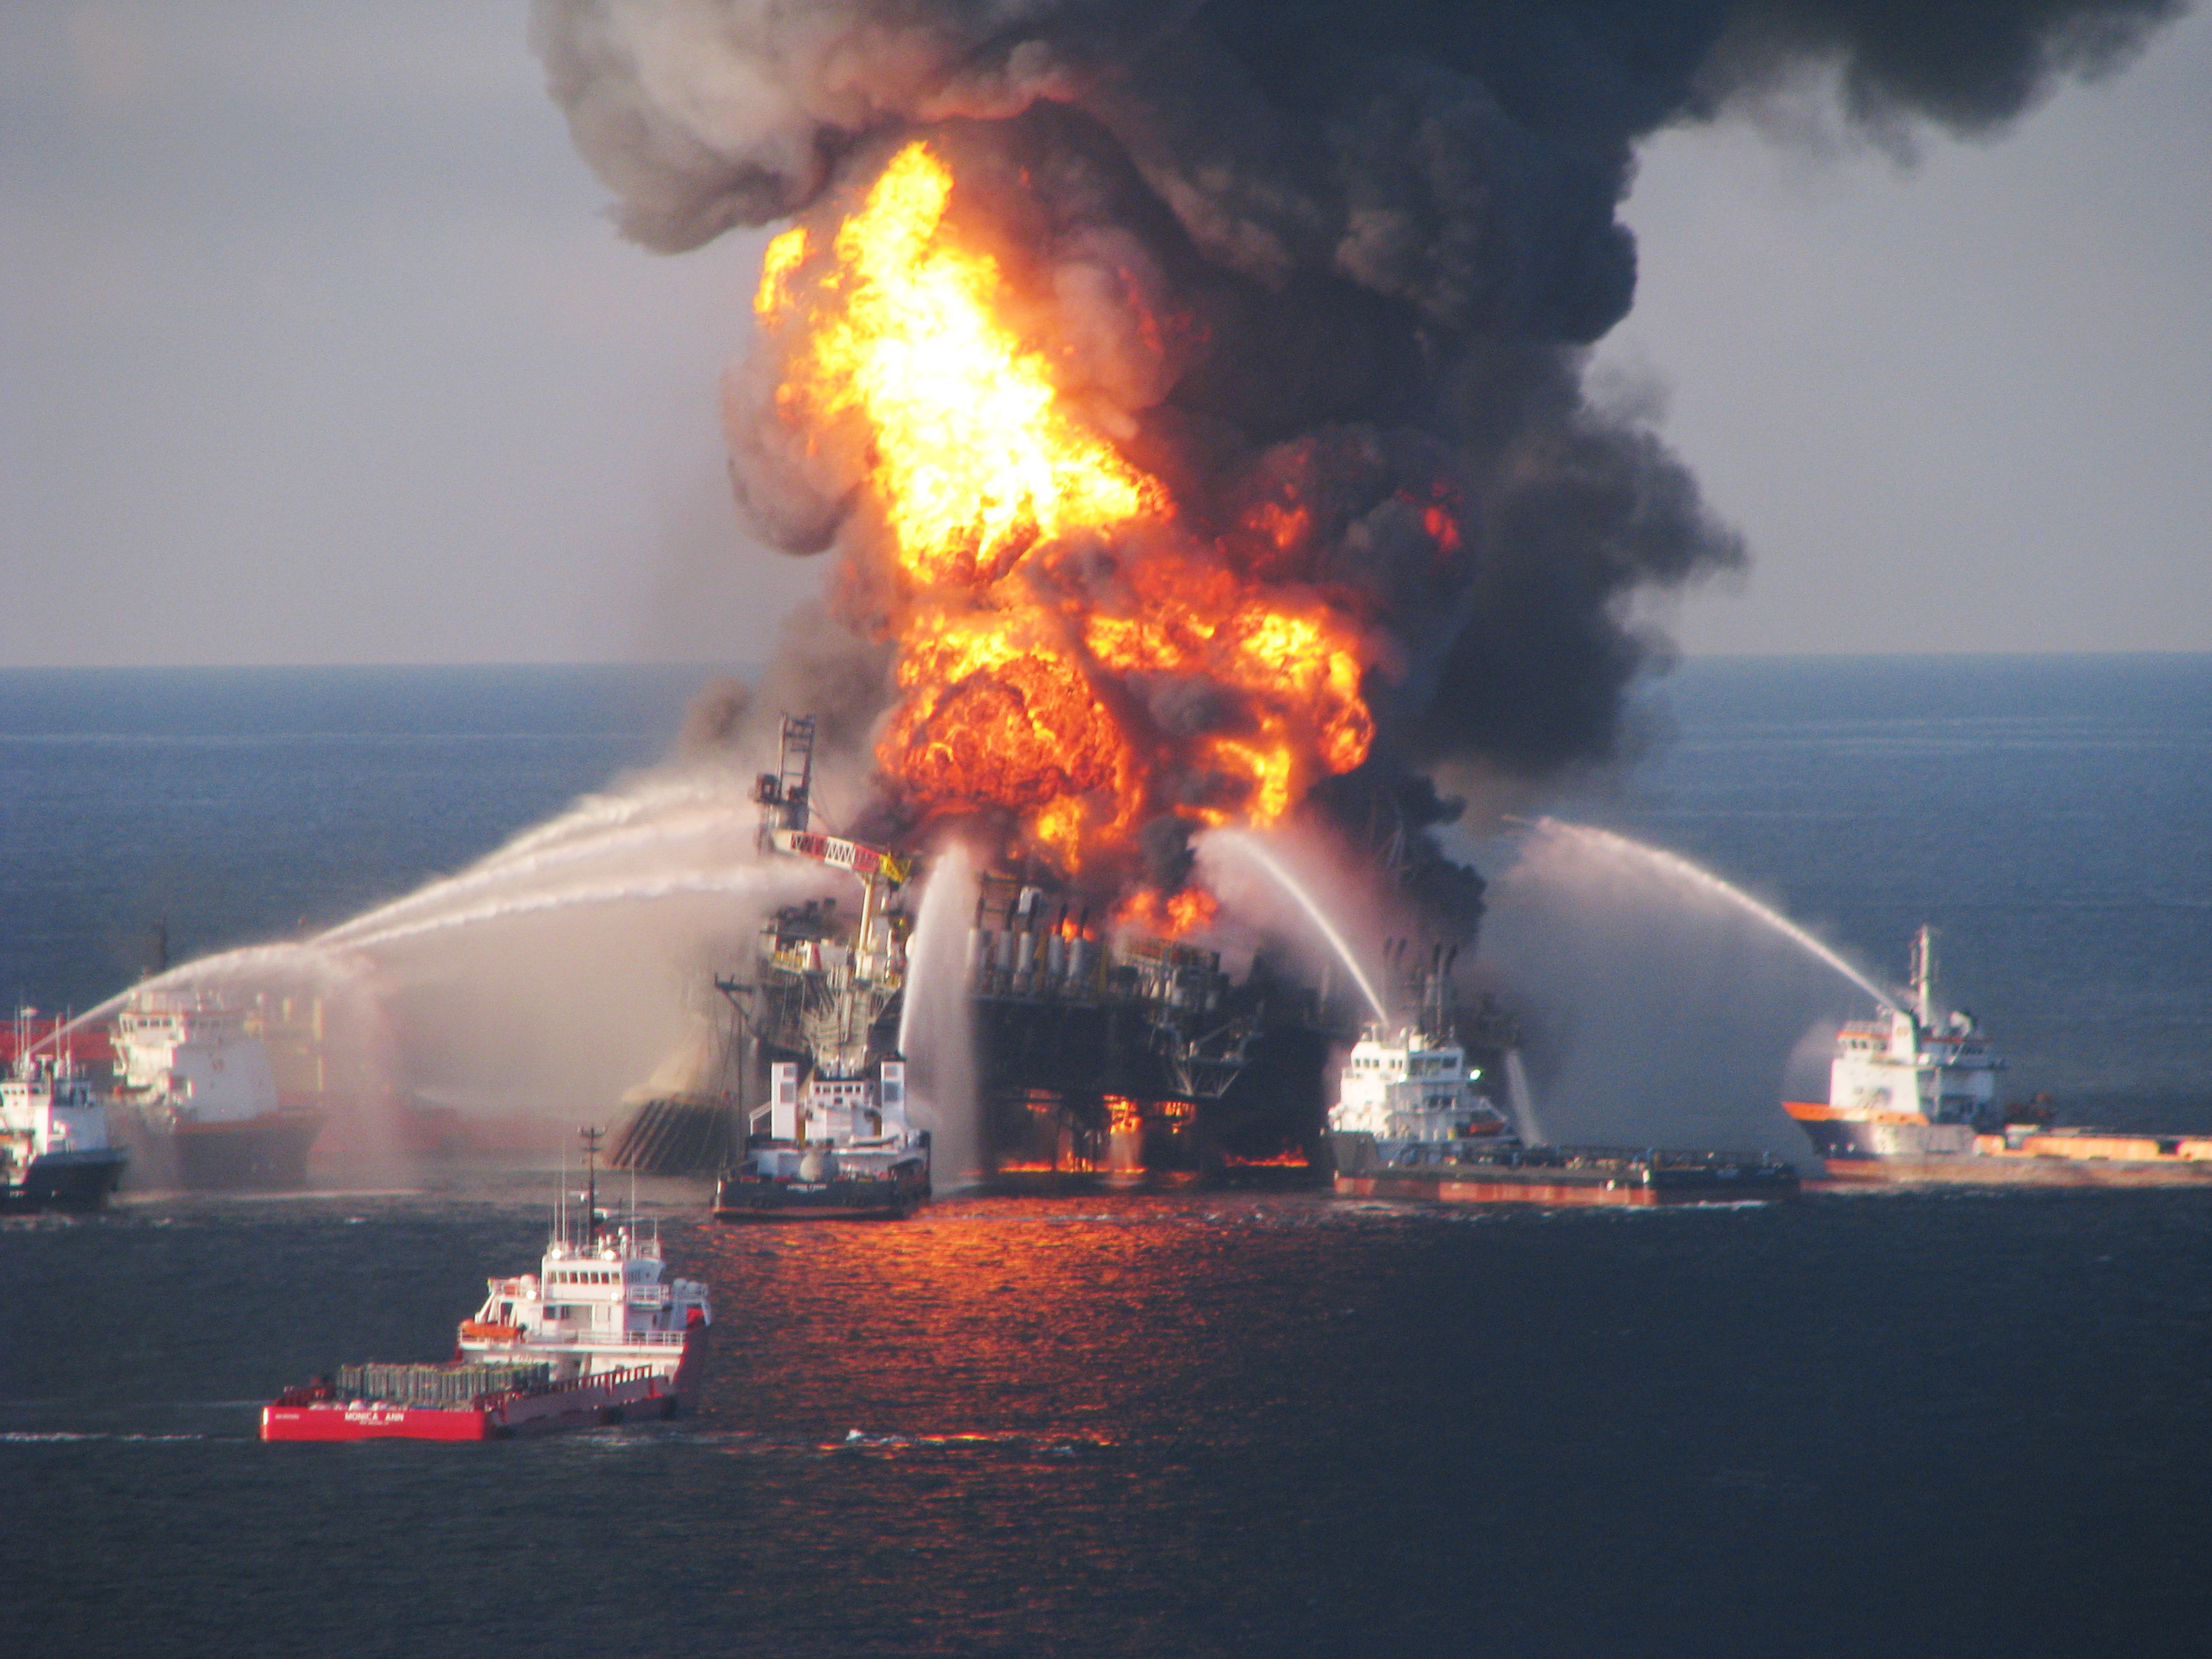 Deepwater Horizon: 10 Years After The Gulf Oil Spill